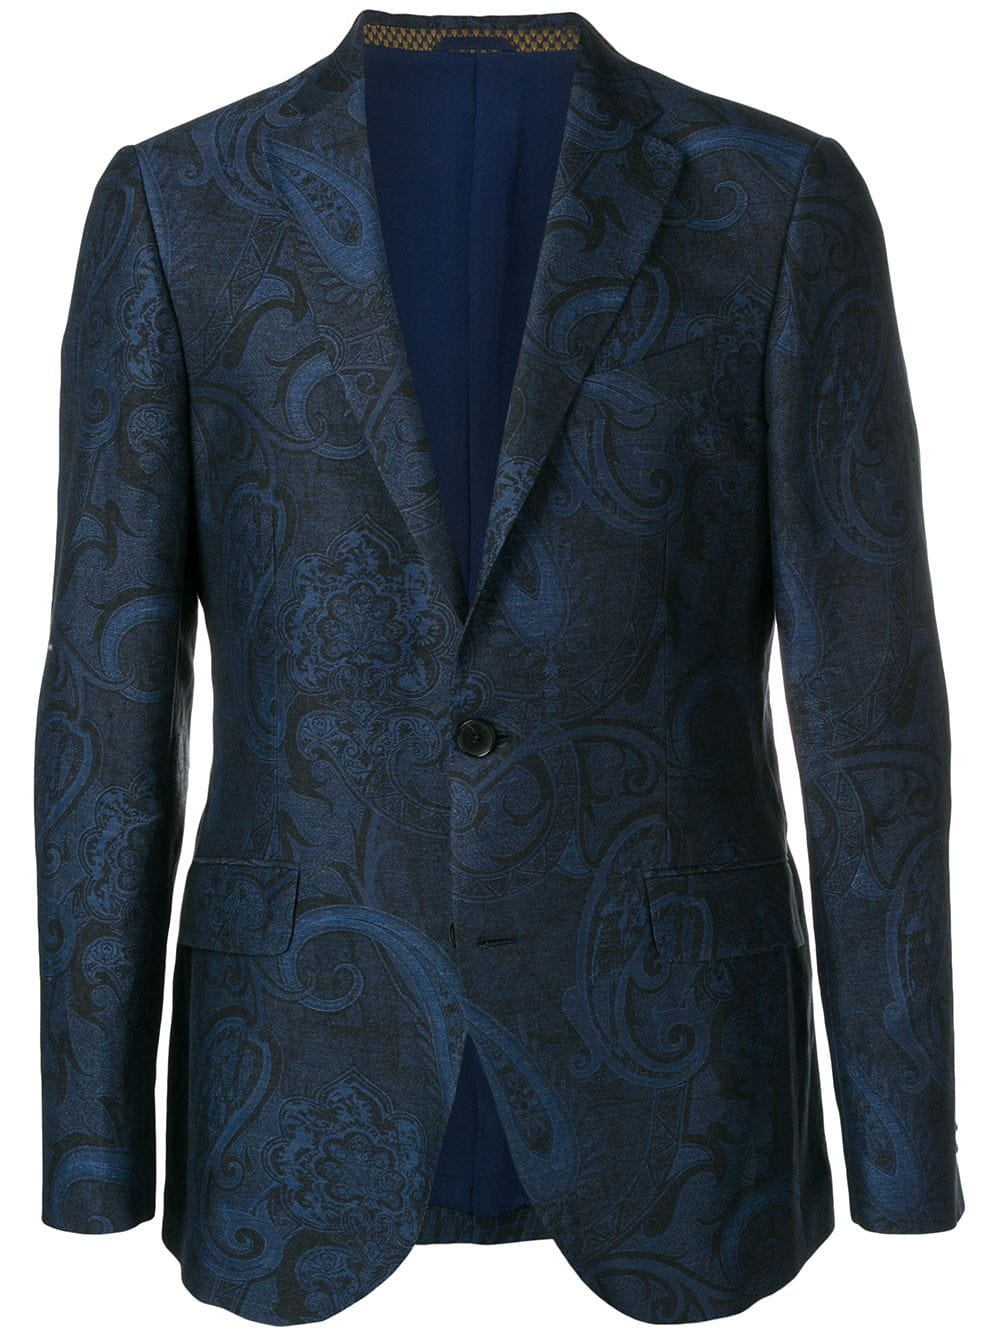 5 Trendy New Years Eve Outfits for Women and Men, men's print dinner jacket, ETRO blue paisley print blazer